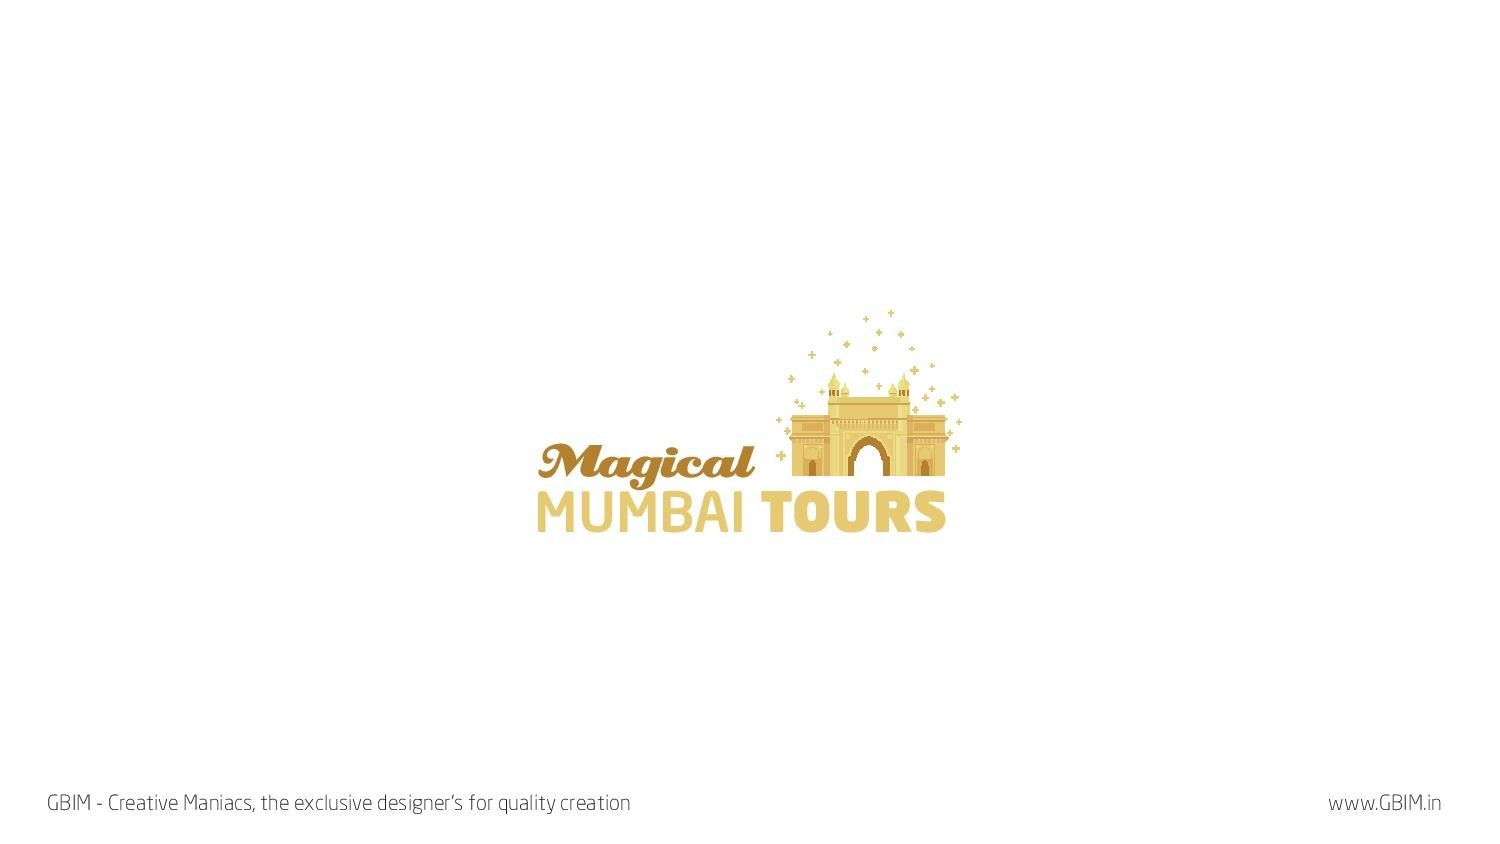 Mumbai Sightseeing Places from magical mumbai tours